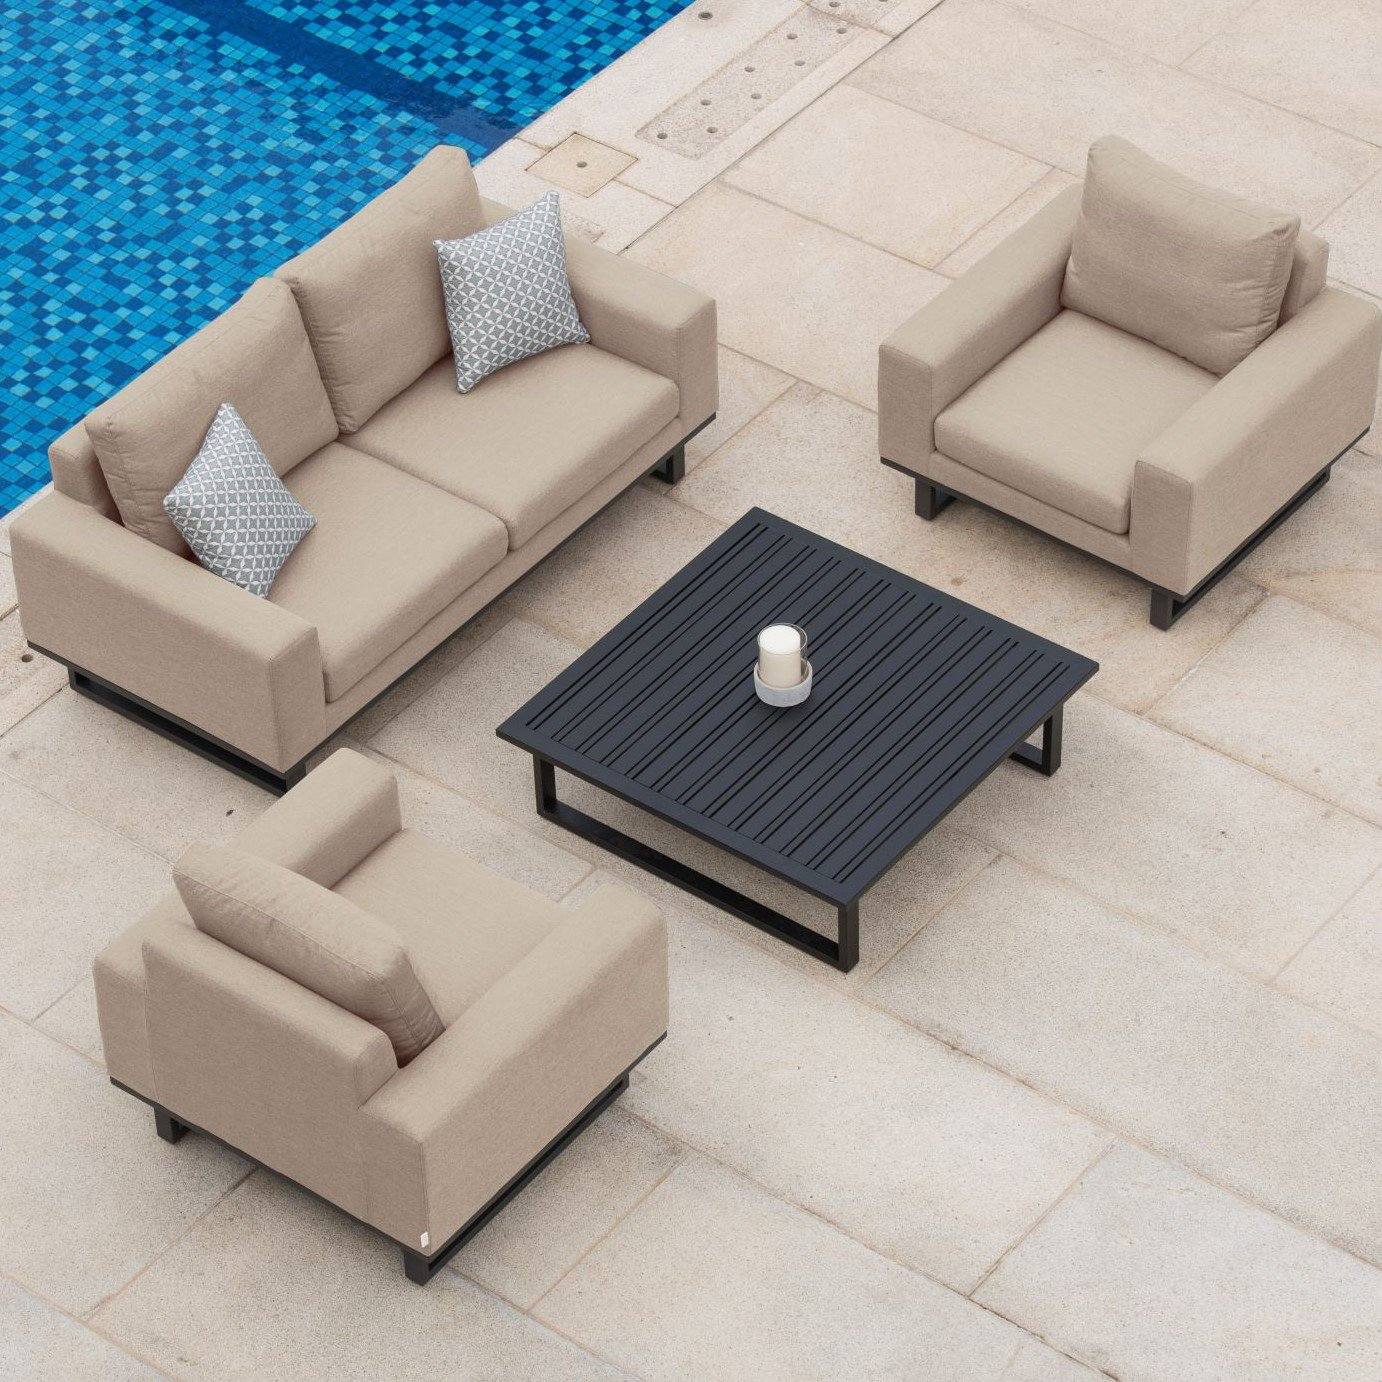 image-Maze Lounge Outdoor Fabric Ethos 2 Seat Sofa Set in Taupe